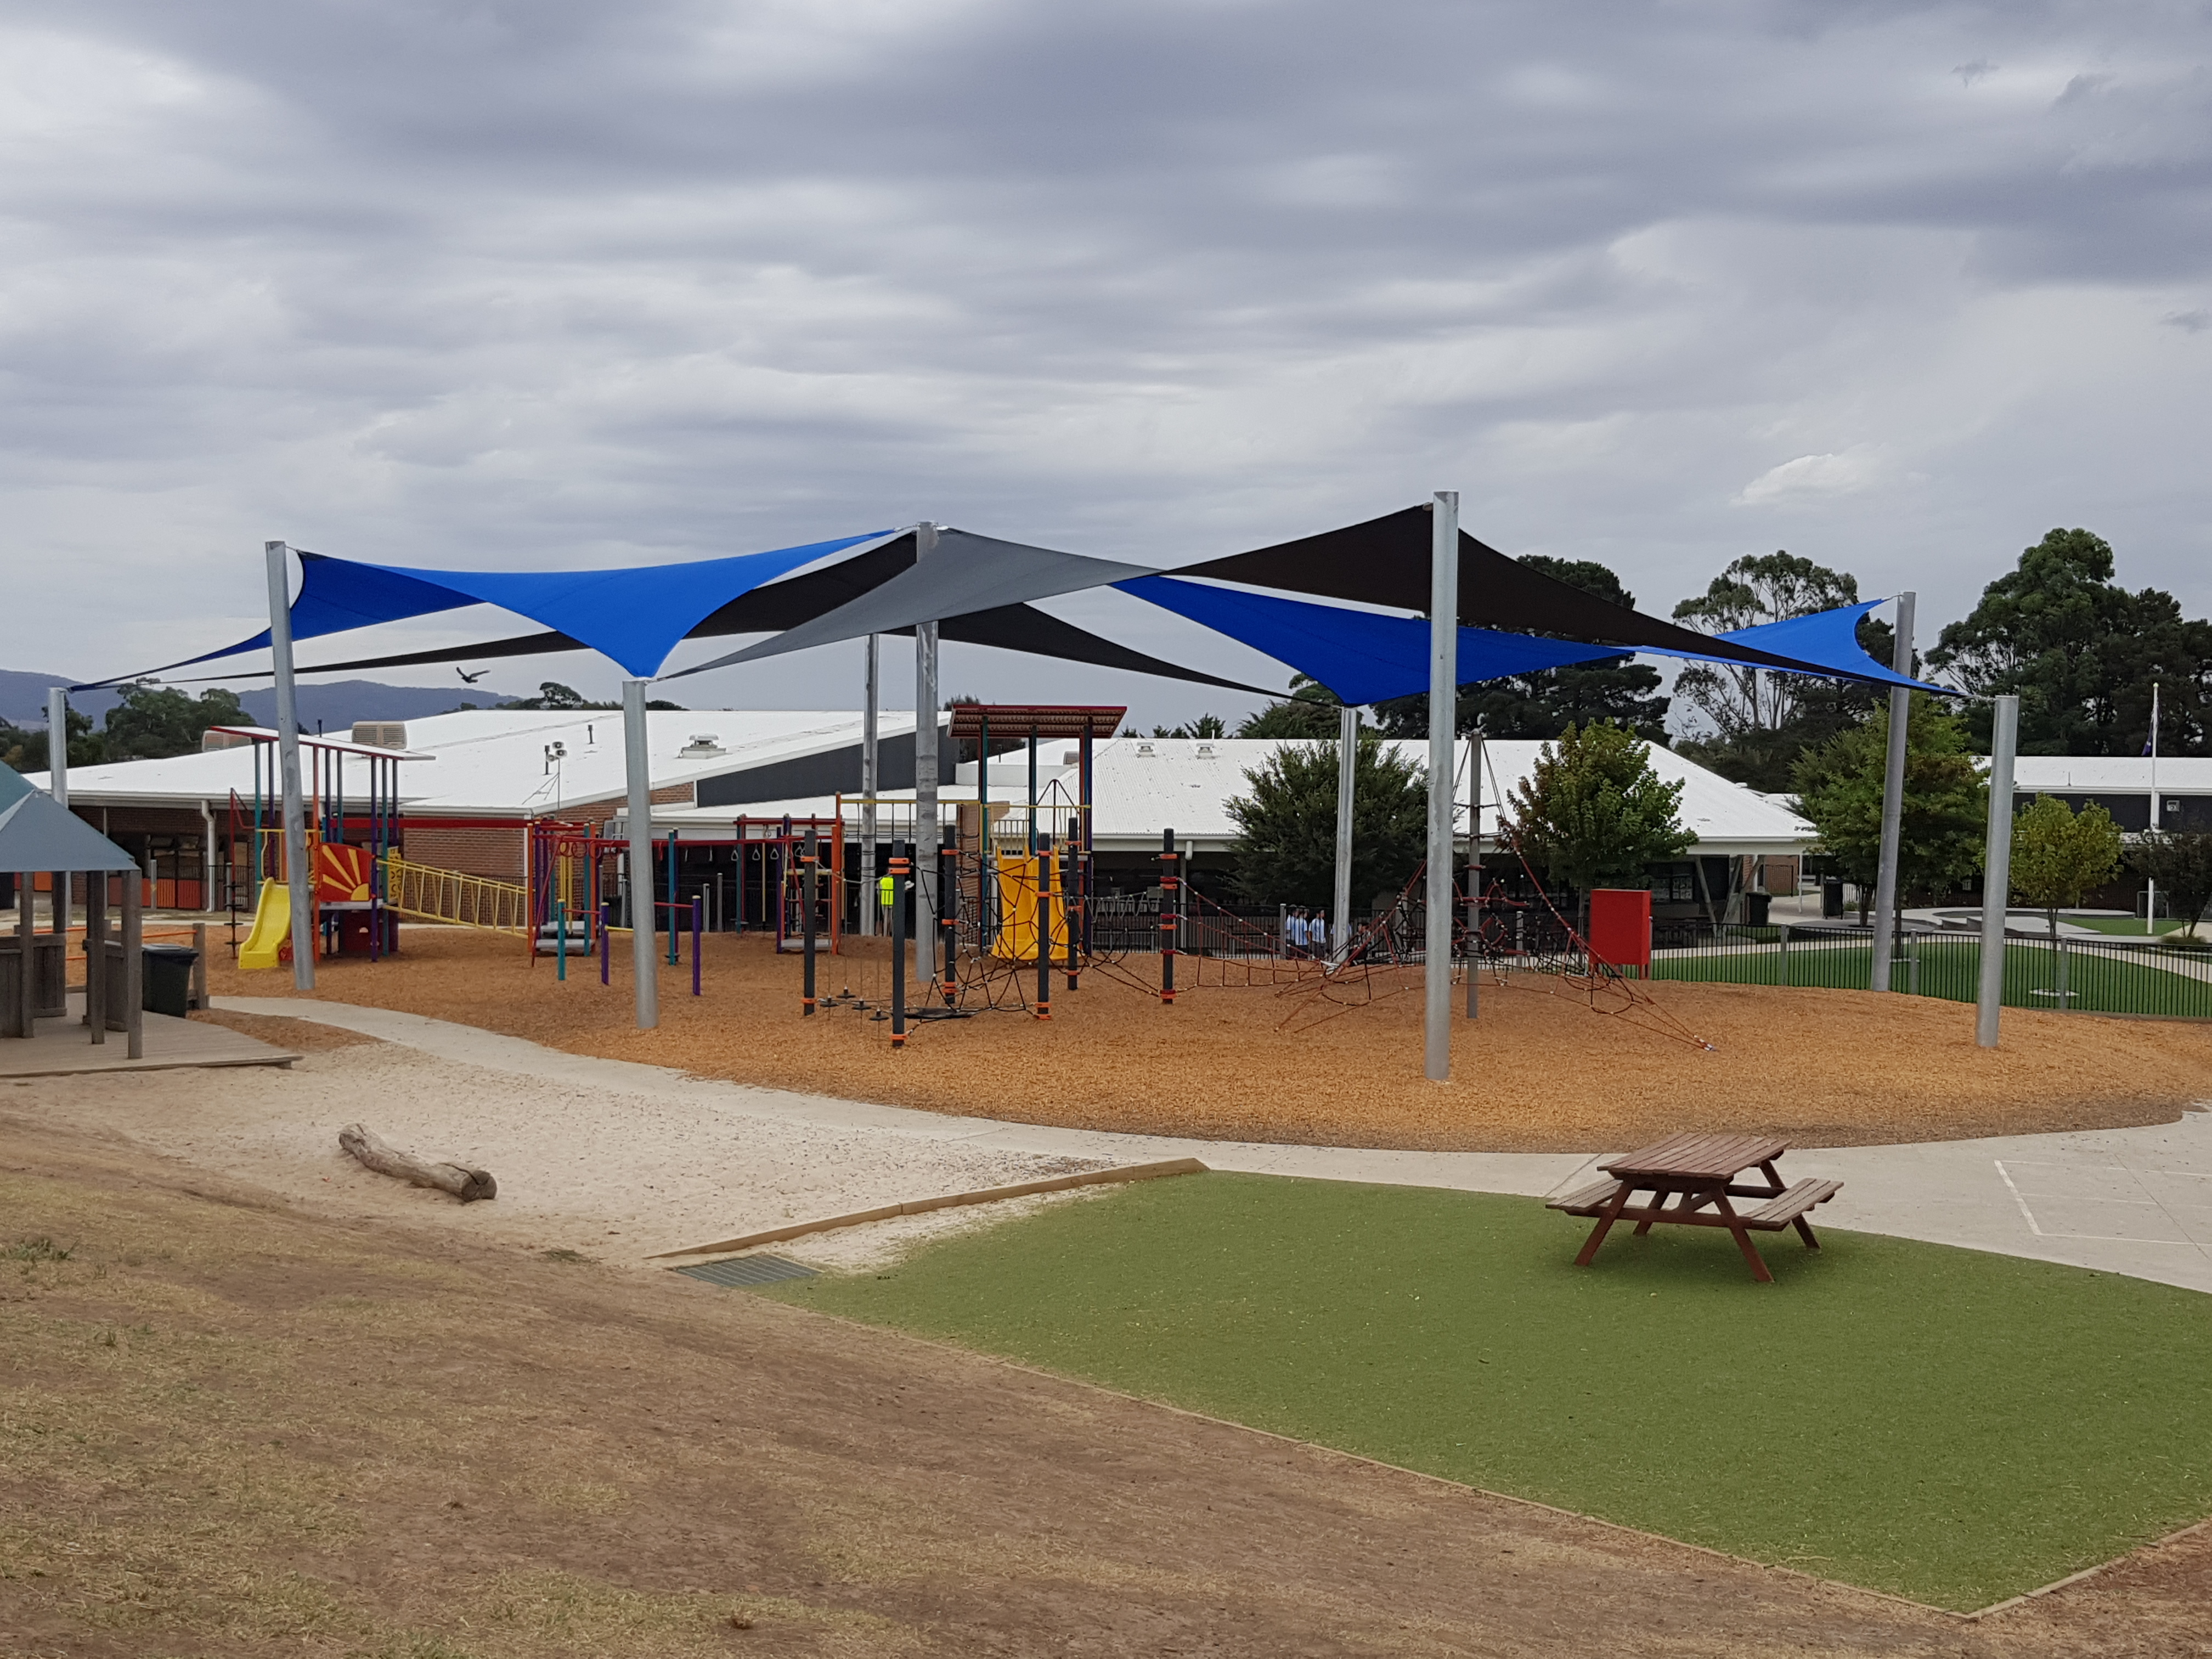 Biam Shade Sails & Playgrounds - Nathalia, VIC 3638 - 0417 304 387 | ShowMeLocal.com